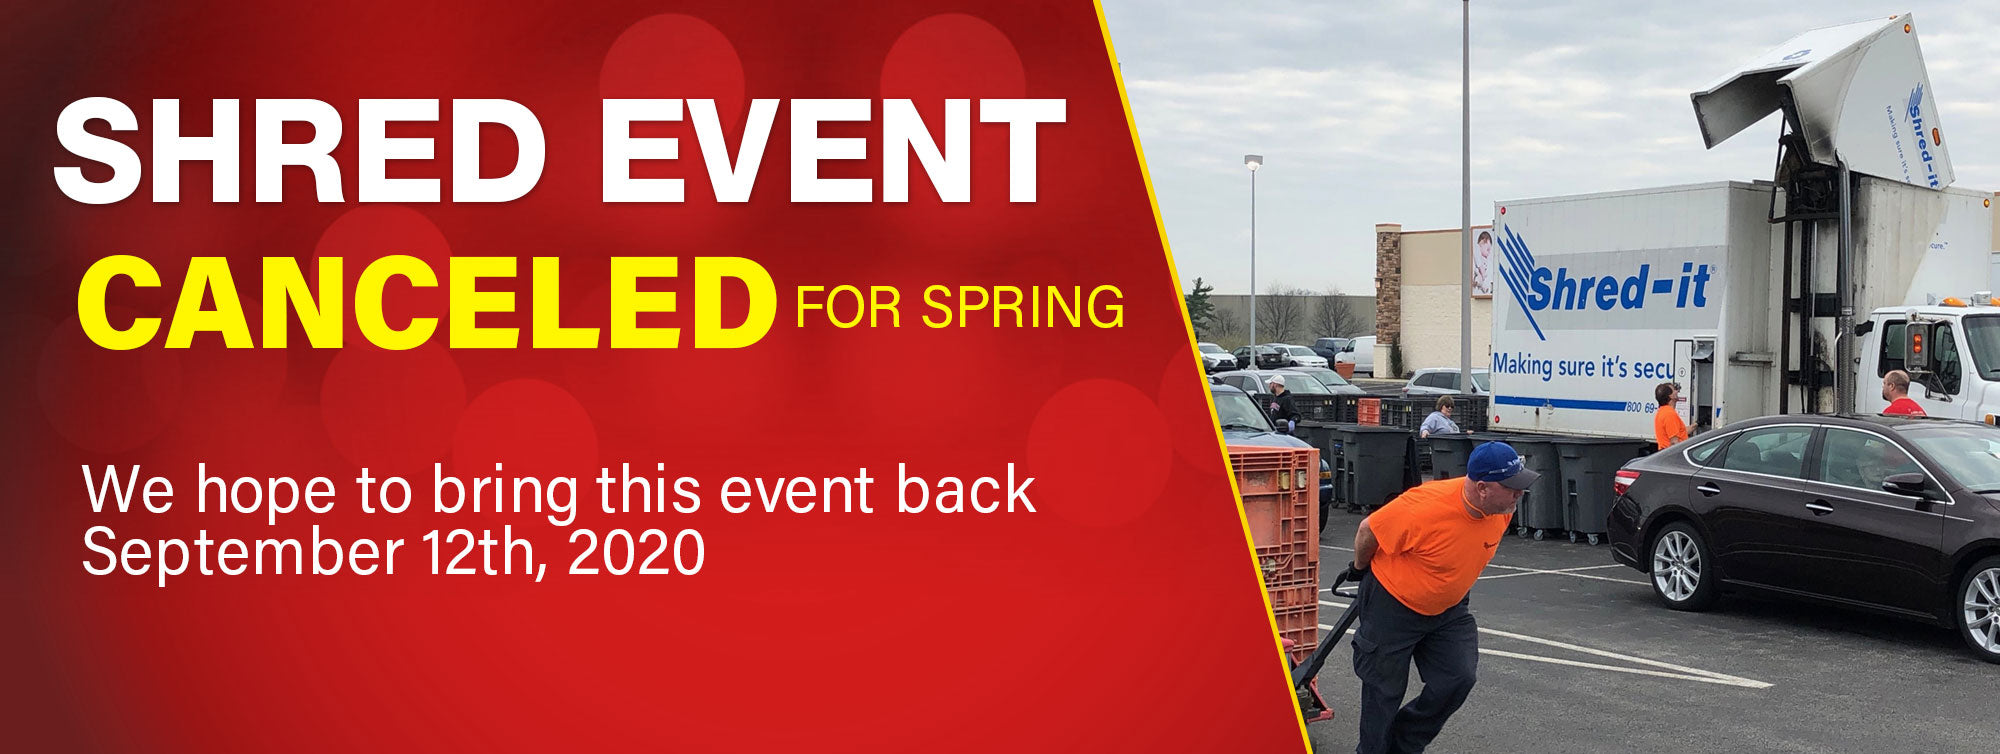 Shred Event Cancelled